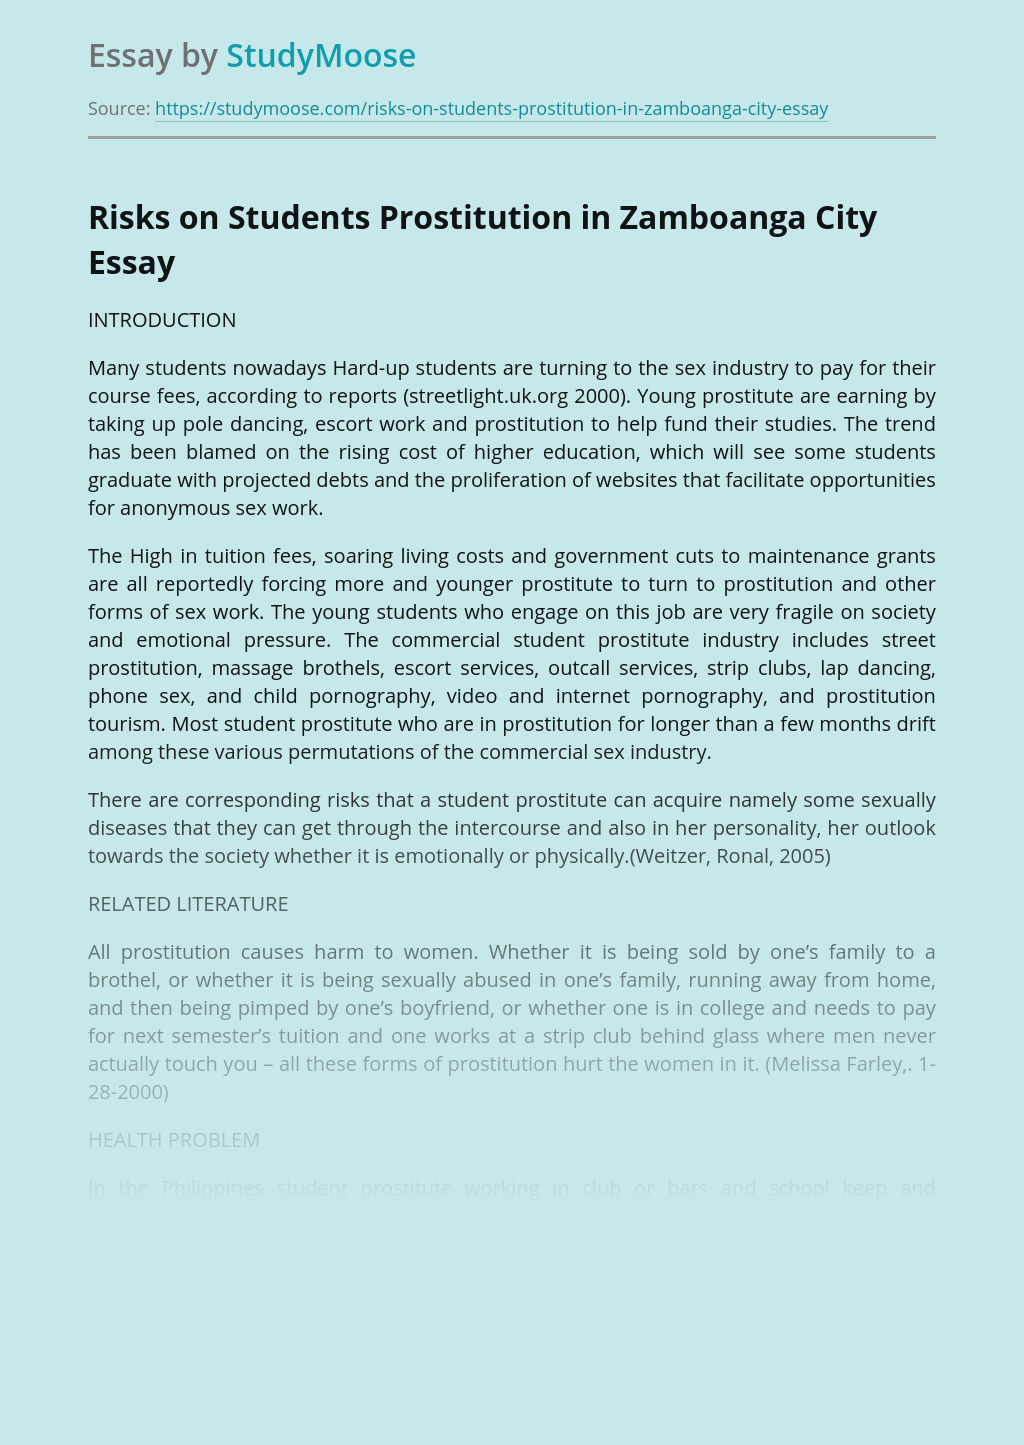 Risks on Students Prostitution in Zamboanga City